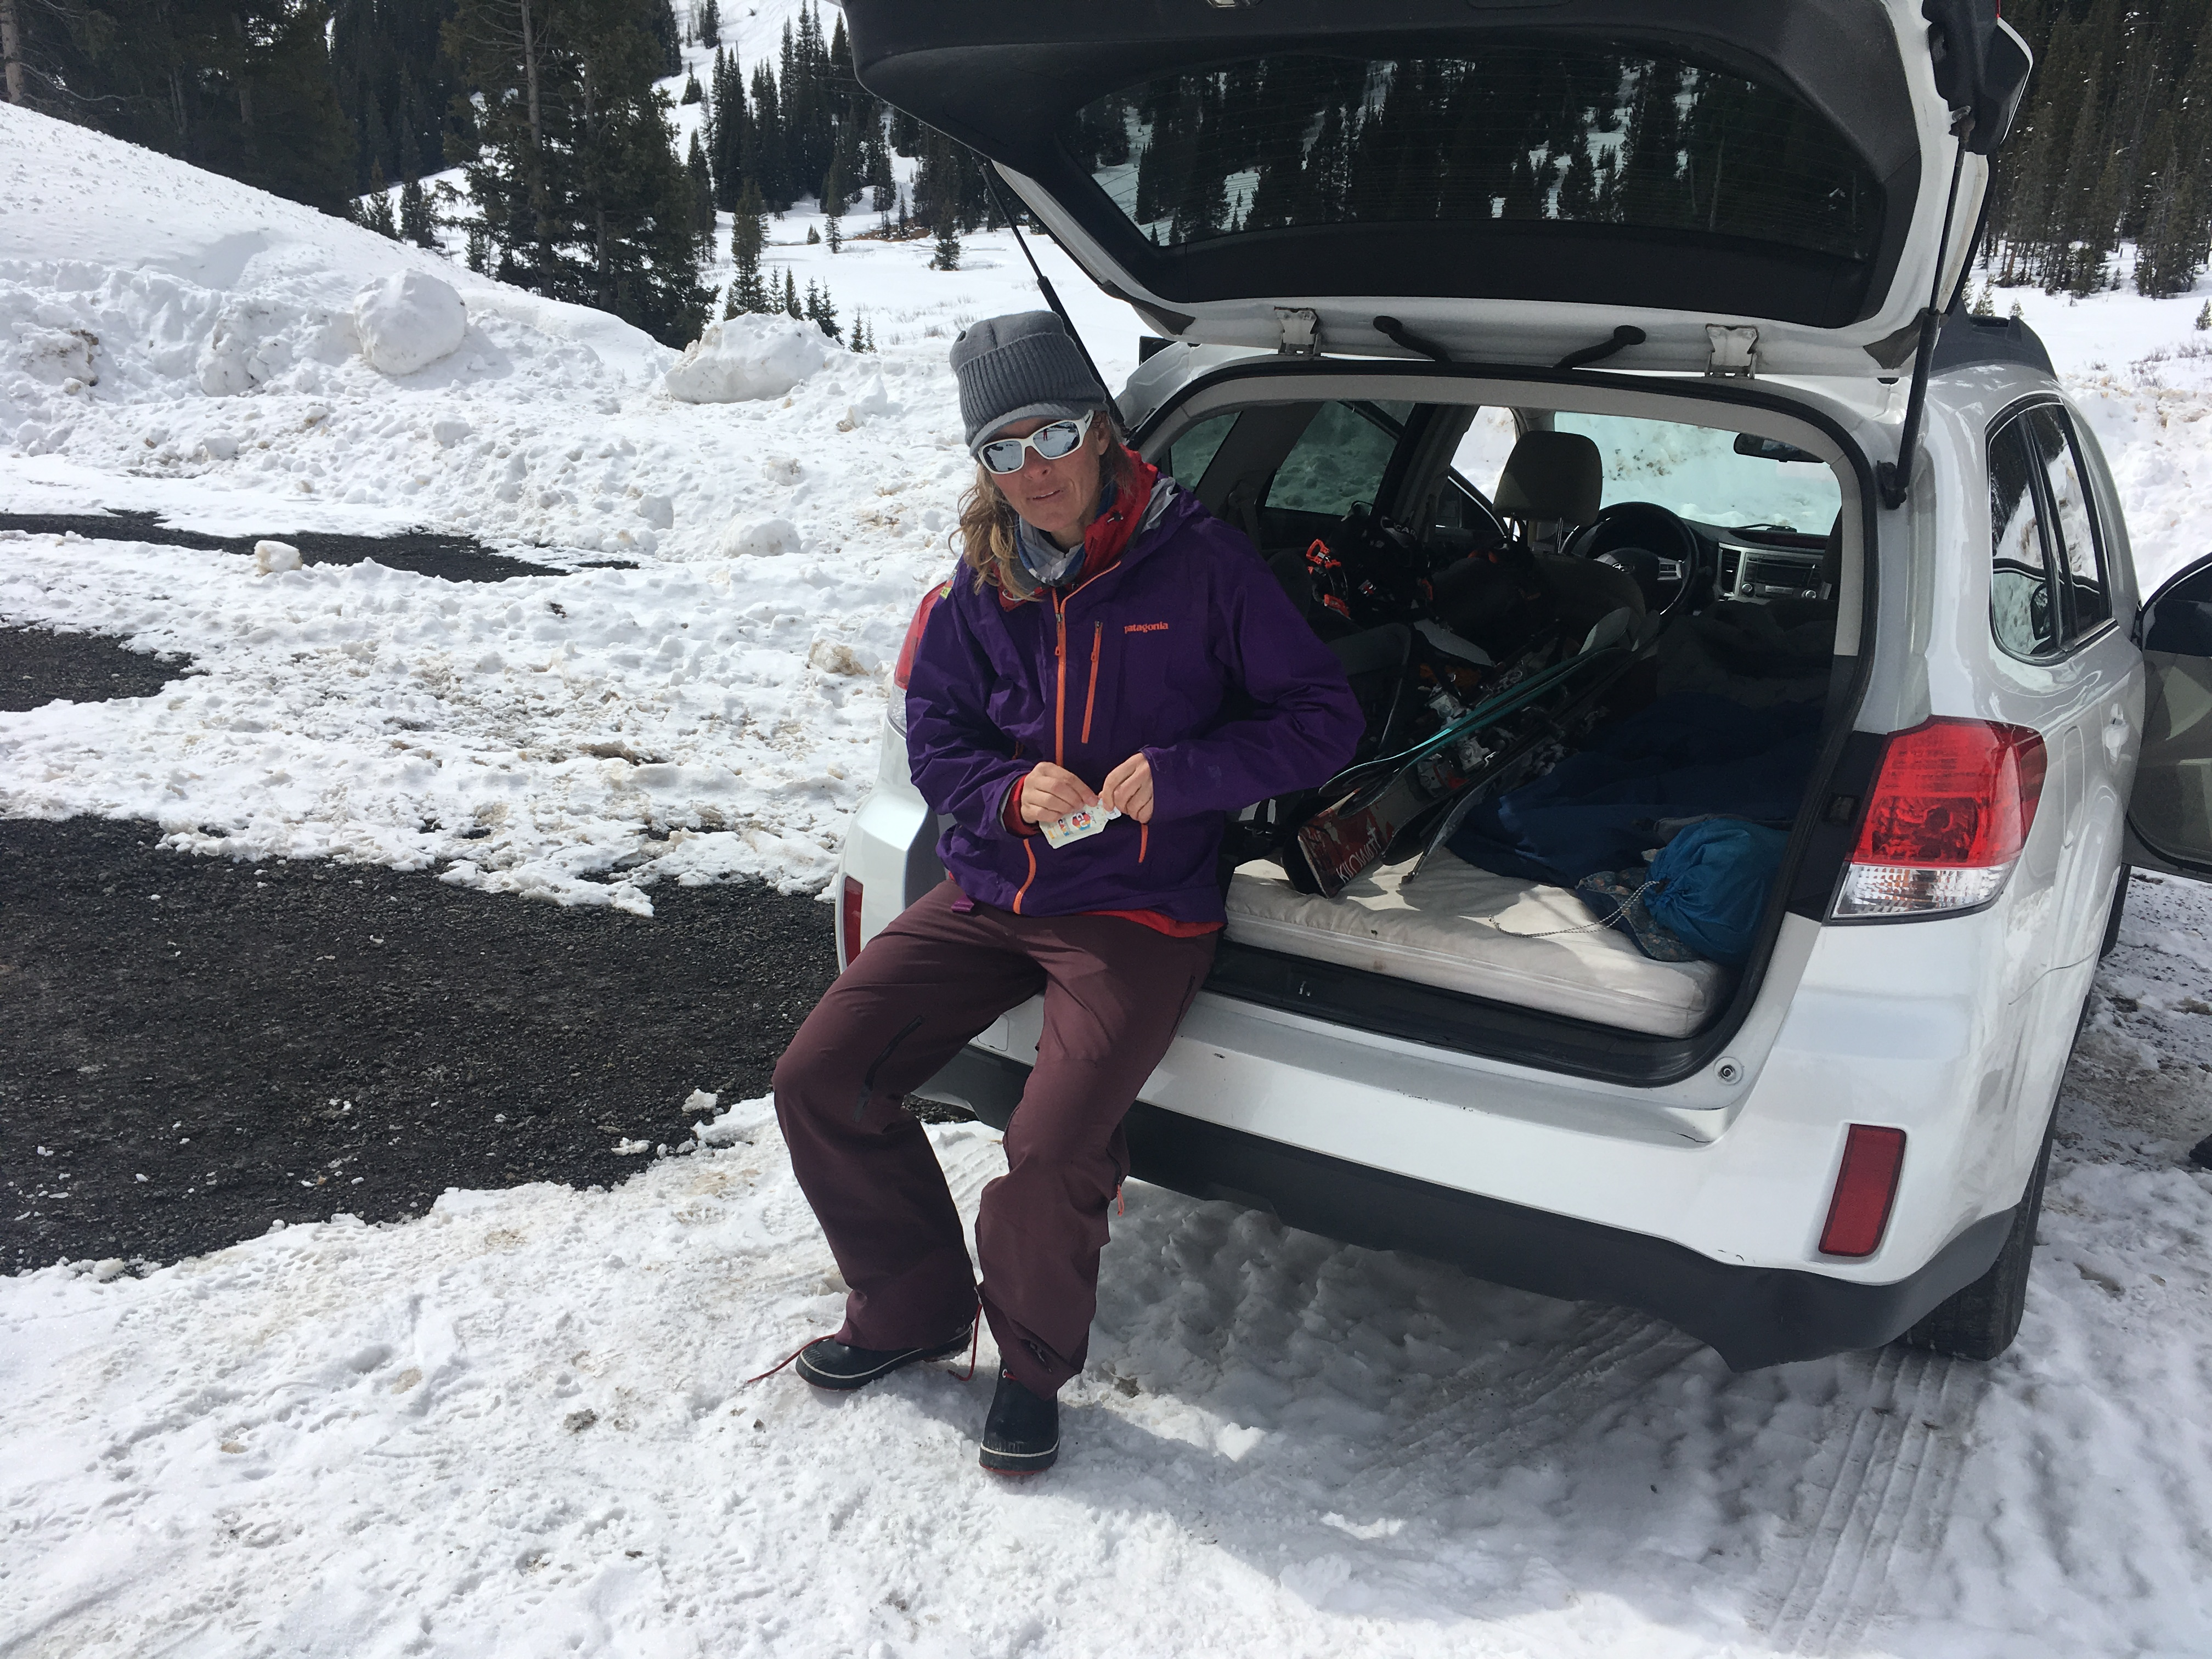 Karen Bockel, co-owner Chicks Climbing and Skiing, refuelling with some apres ski Gu ©Kitty Calhoun